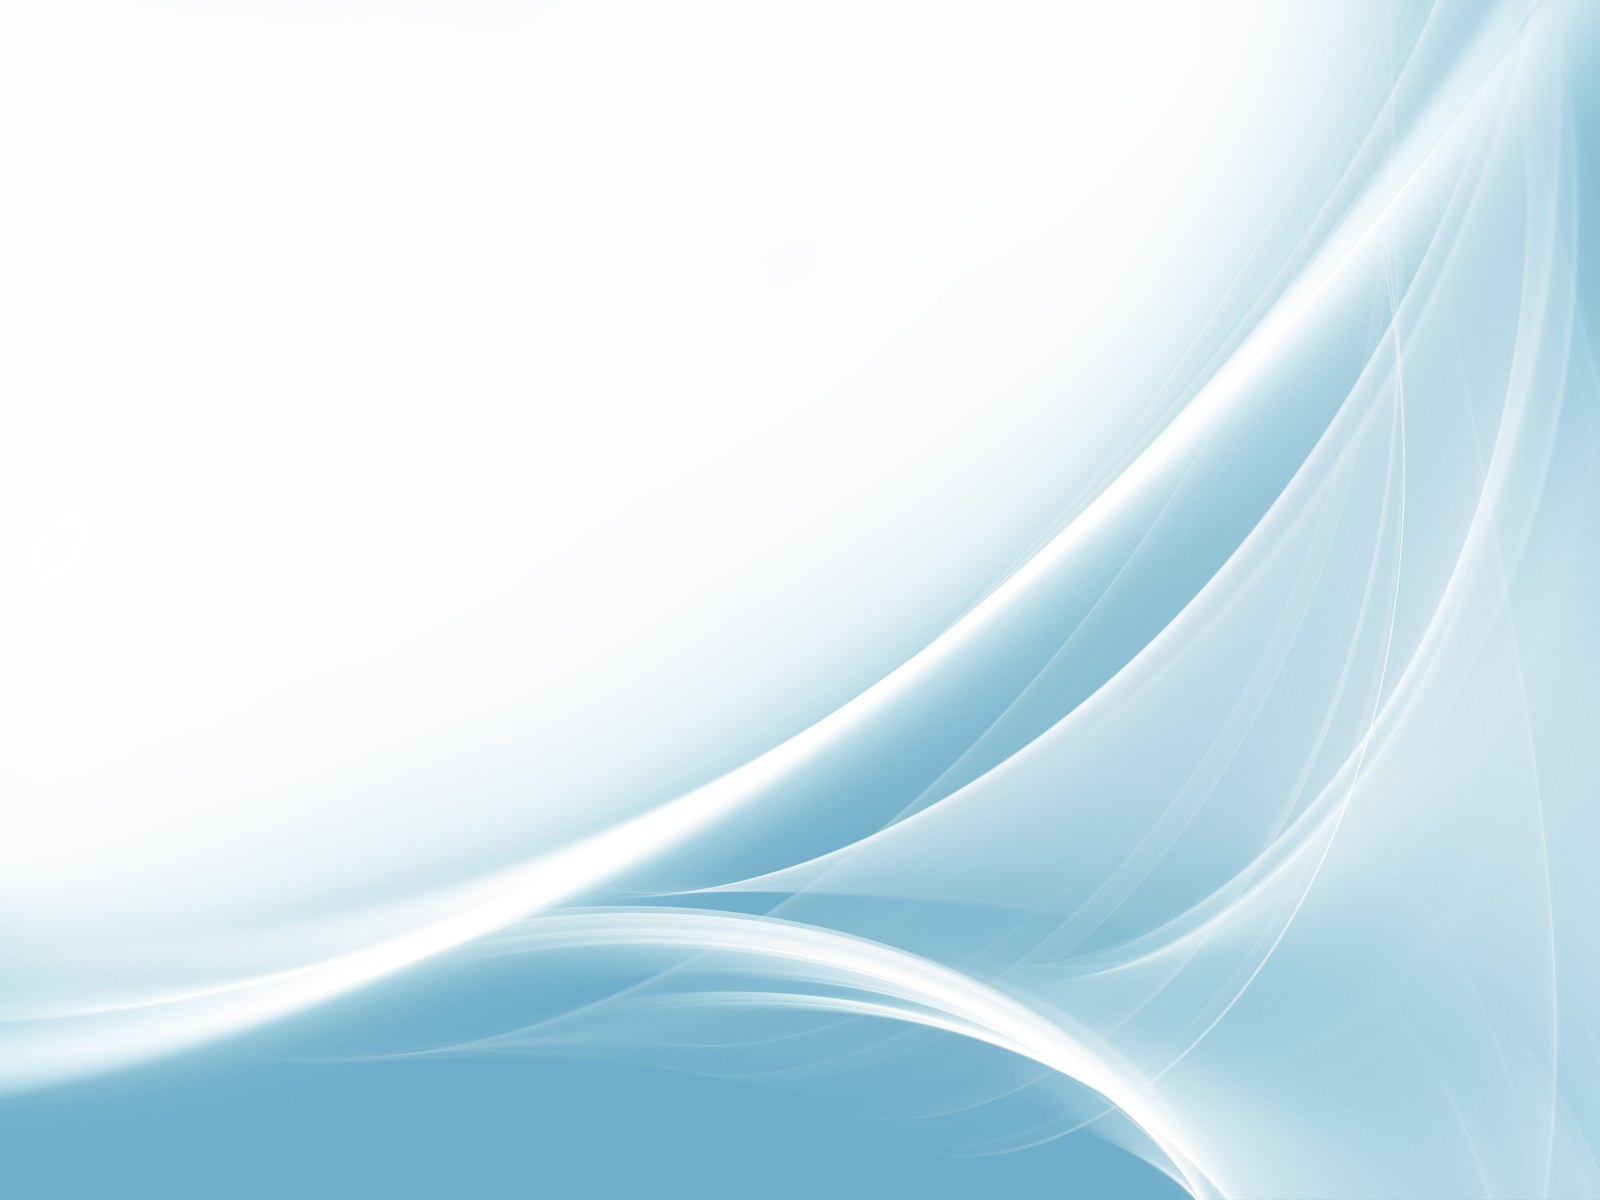 Abstract Light White Background   wallpaper 1600x1200